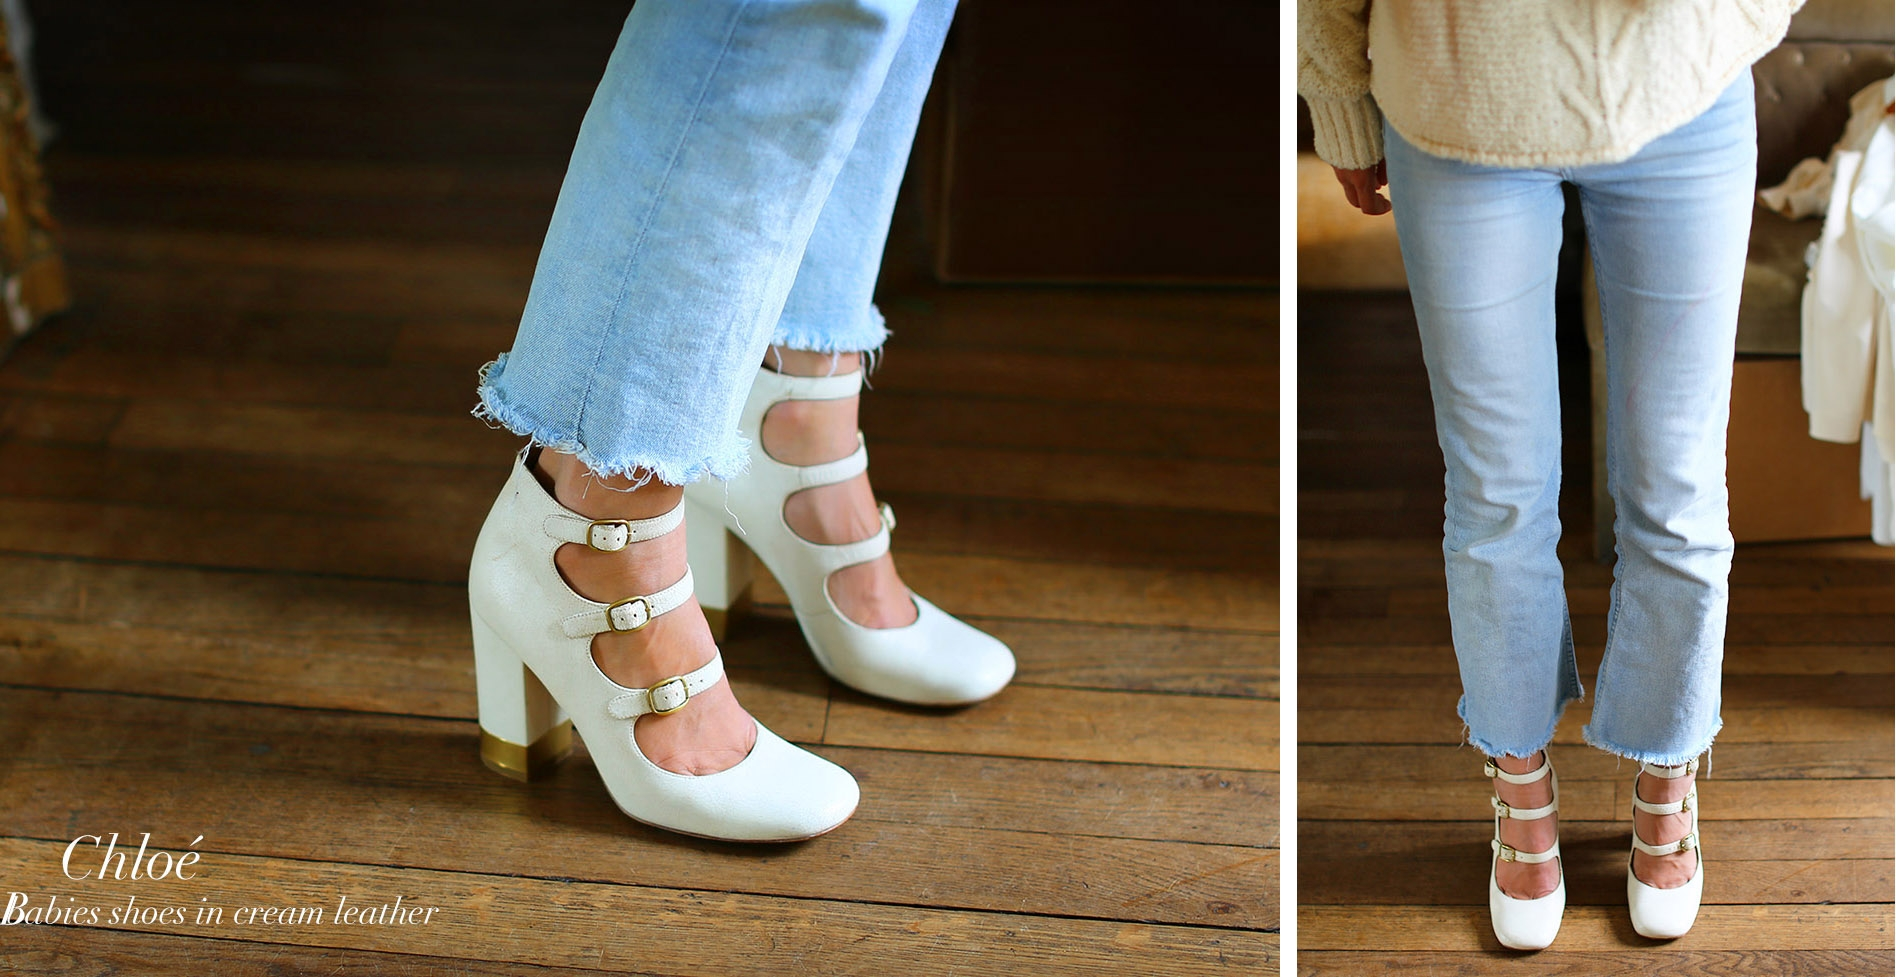 CHLOE Multi-strap with gold buckles ivory white distressed leather pumps Retail price €600 Size 38